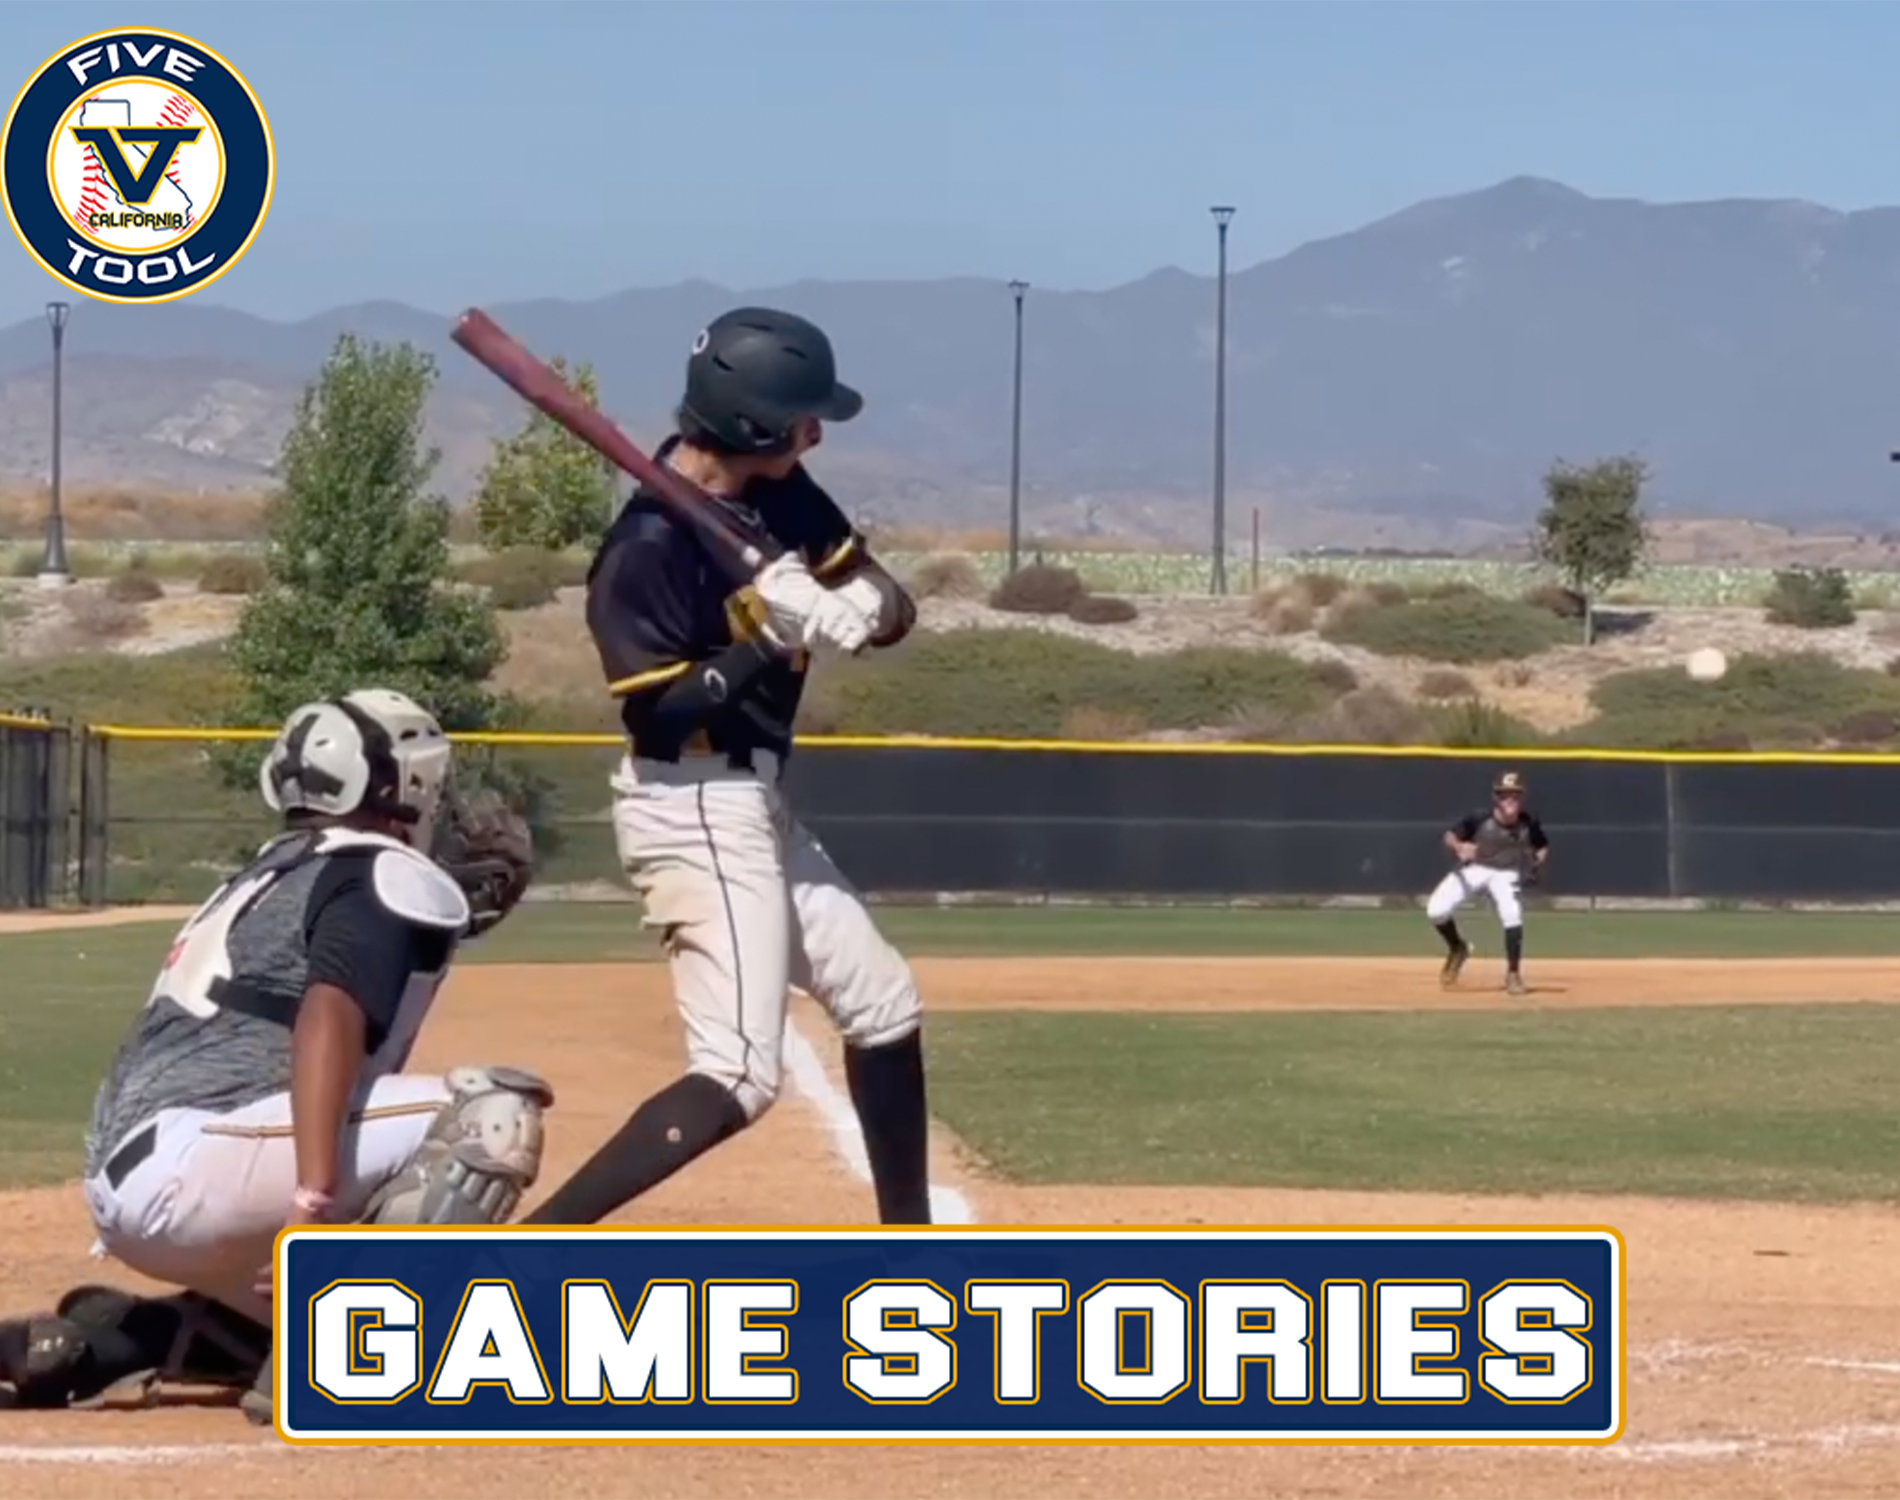 Game Stories: Five Tool West World Series (Friday, August 6)